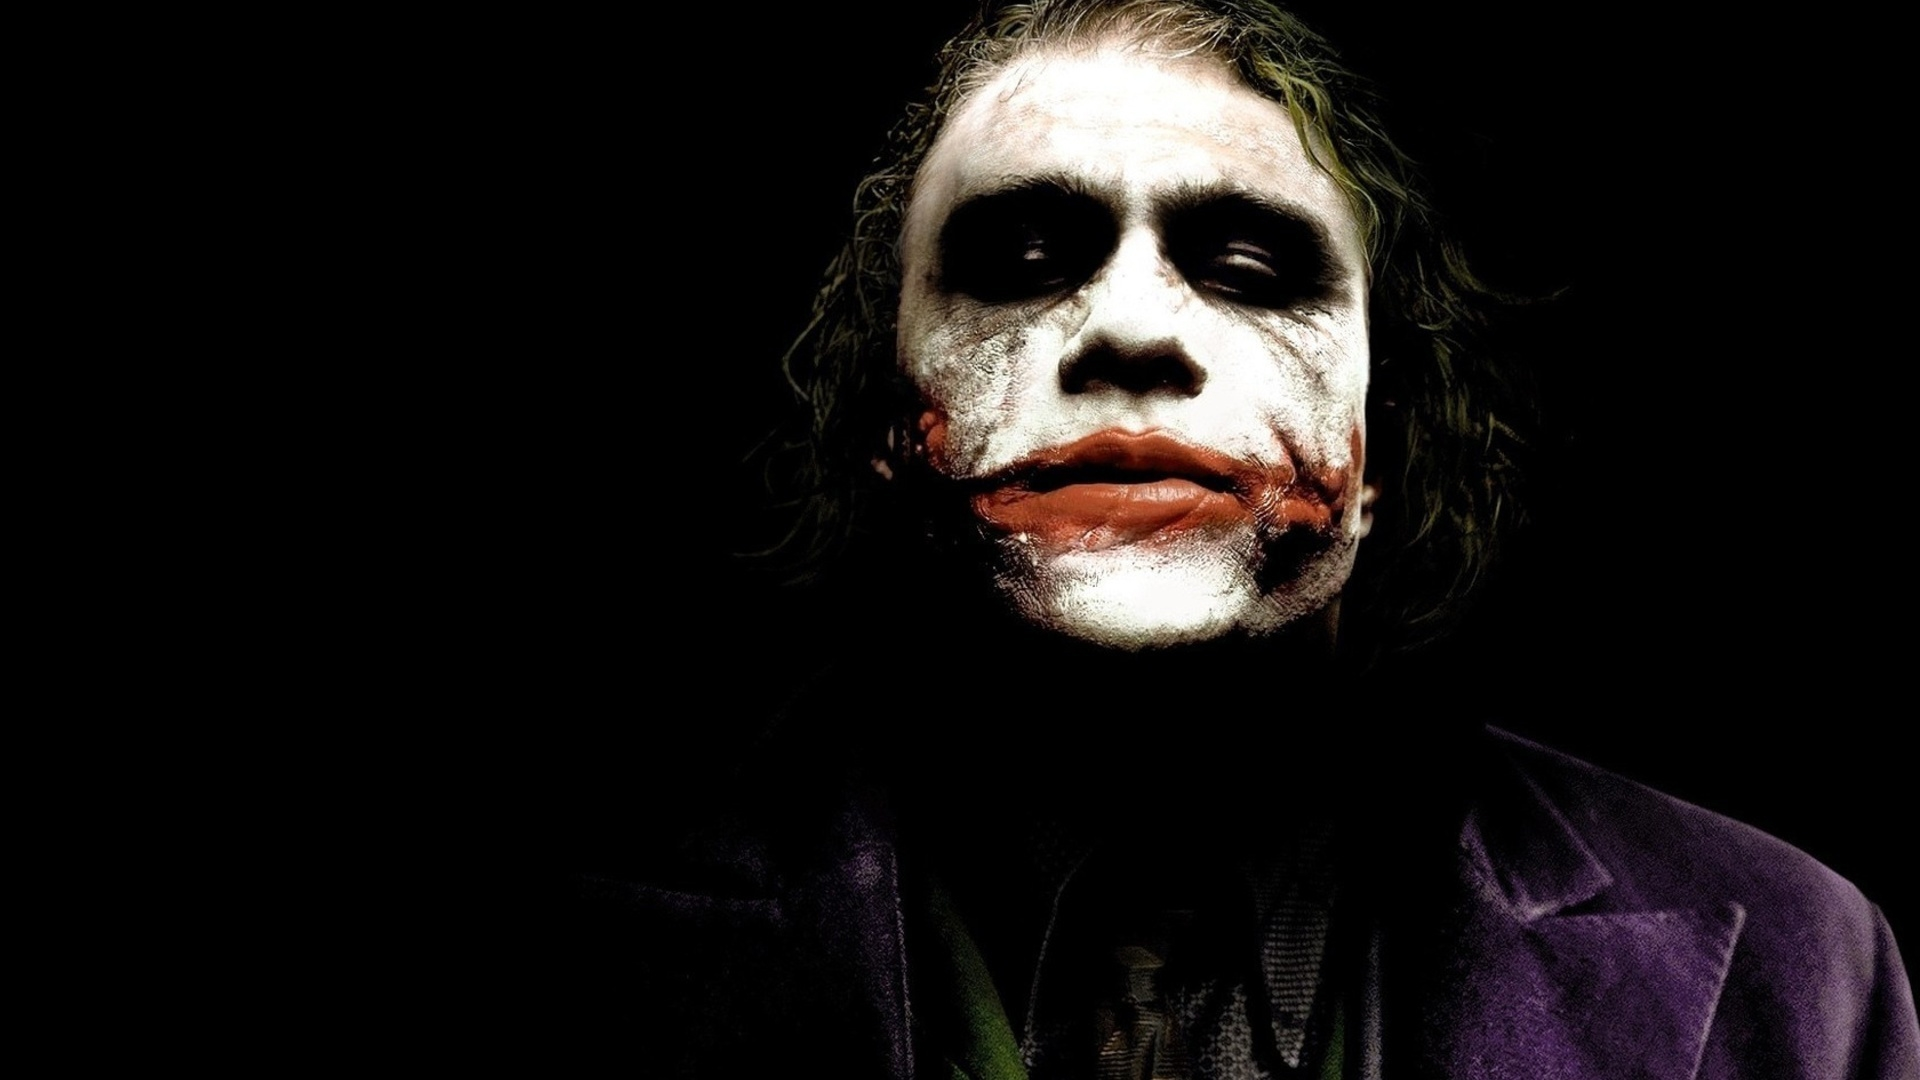 hd heath ledger joker wallpaper hd heath ledger joker wallpaper was 1920x1080